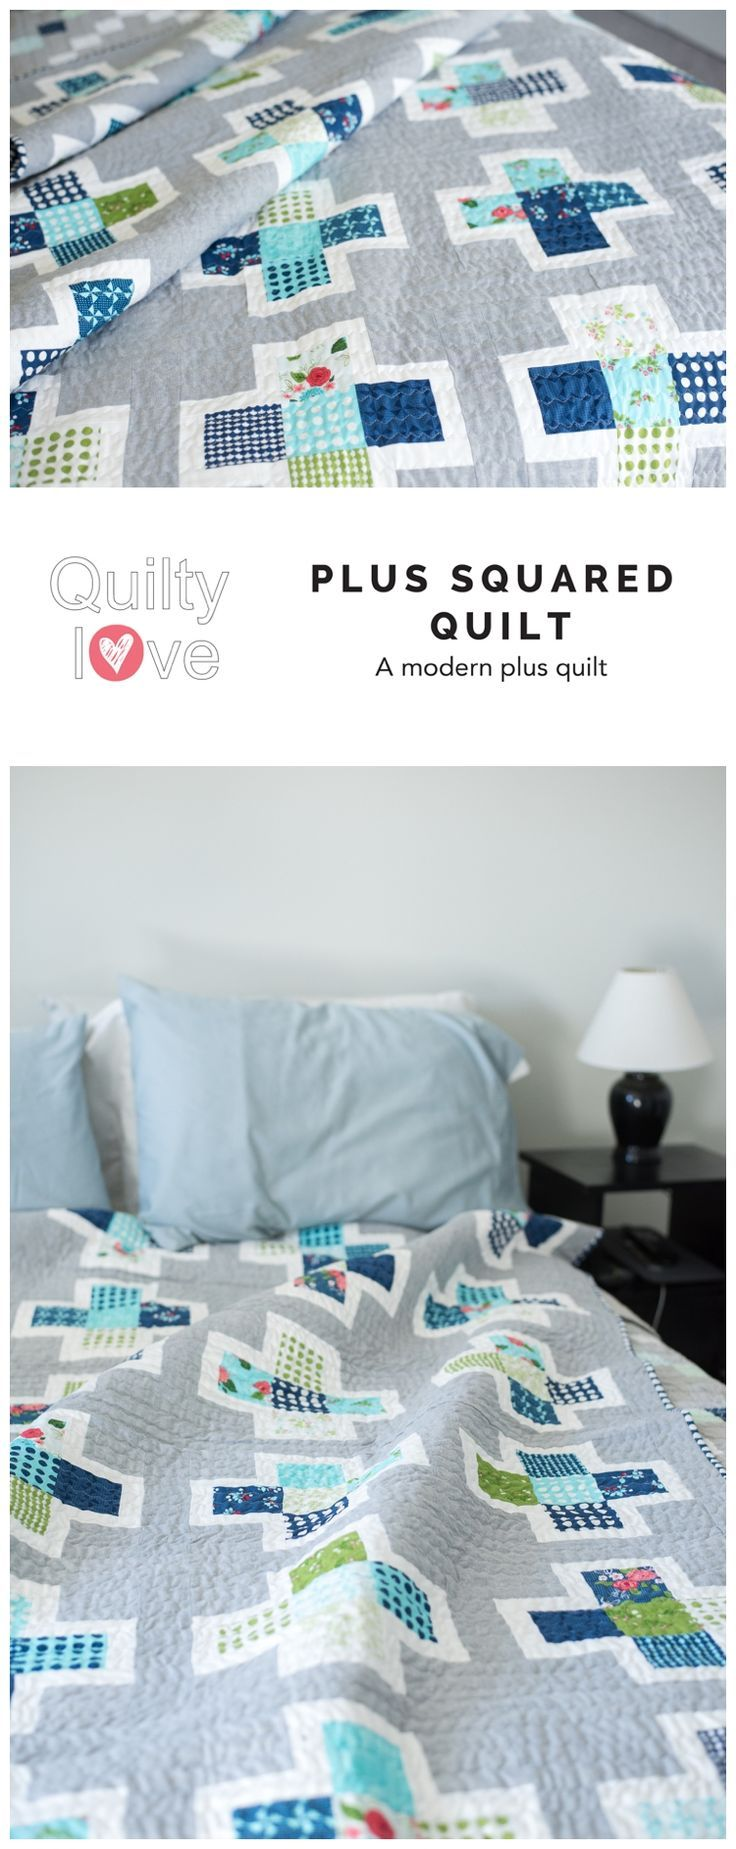 Plus Squared quilt pattern by Emily of quiltylove.com.  Modern plus   quilt.  Fat quarter friendly quilt pattern in baby, throw and queen   sizing.  Modern plus quilt.